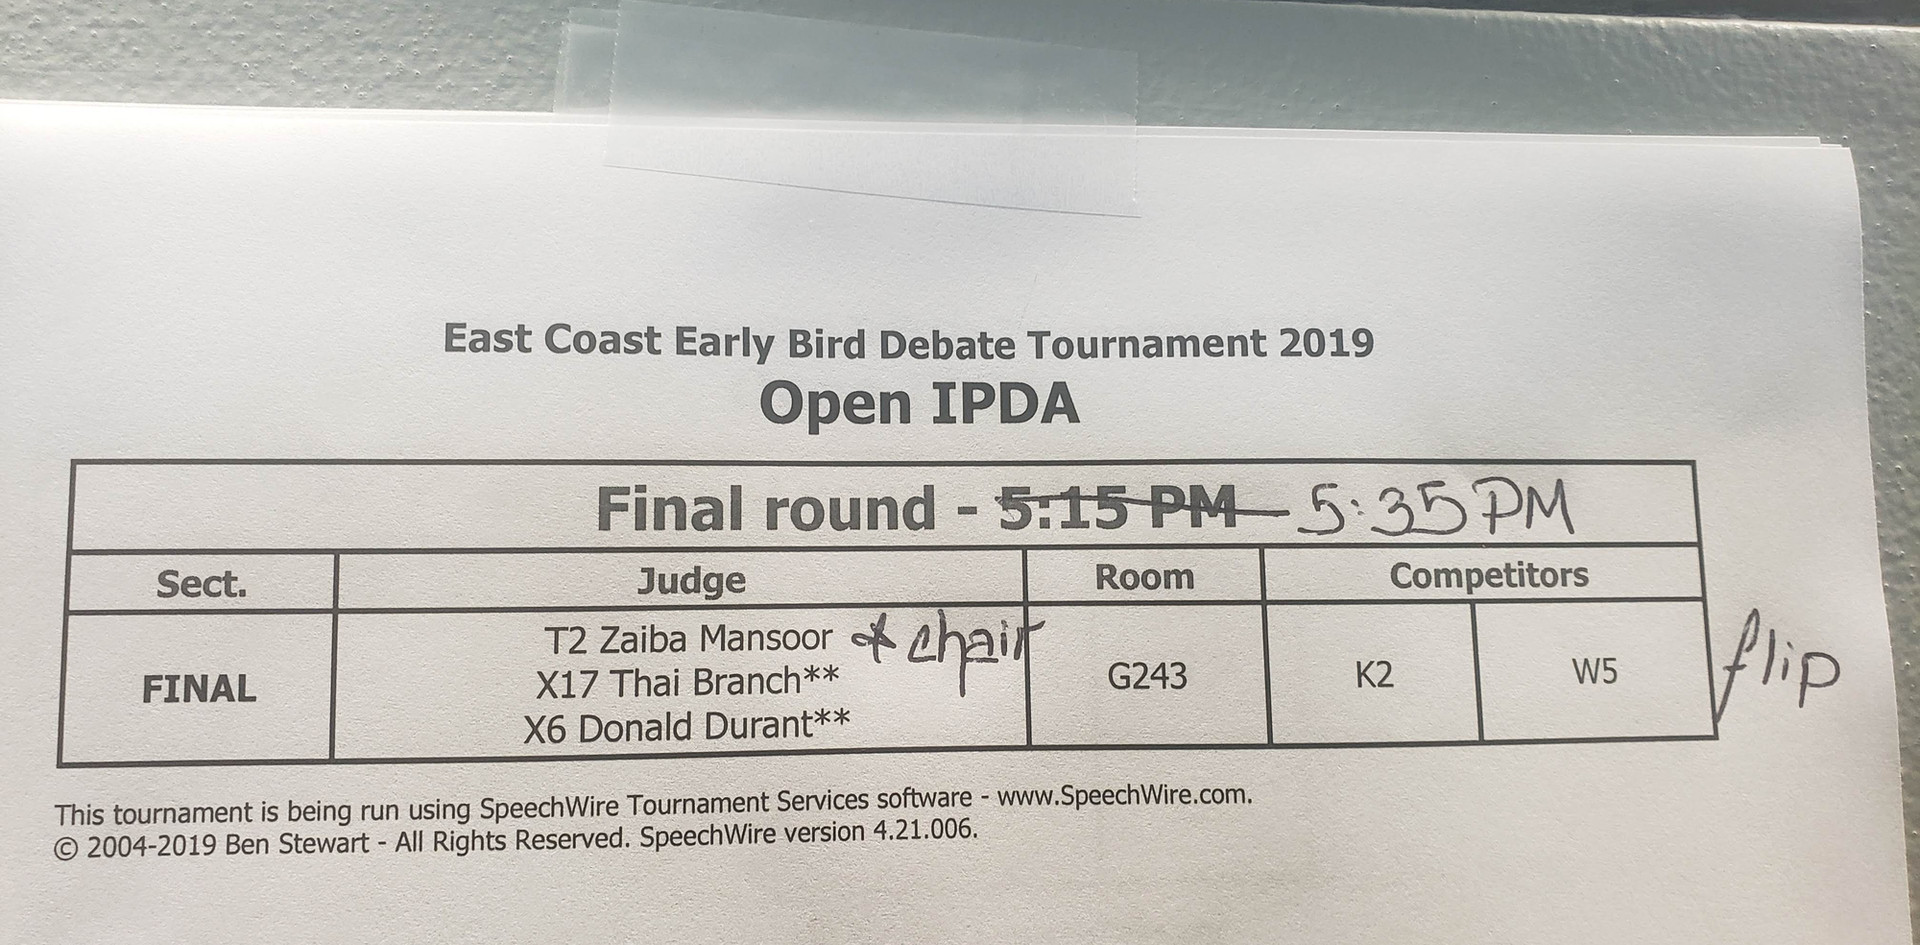 East Coast Early Bird Debate Tournament